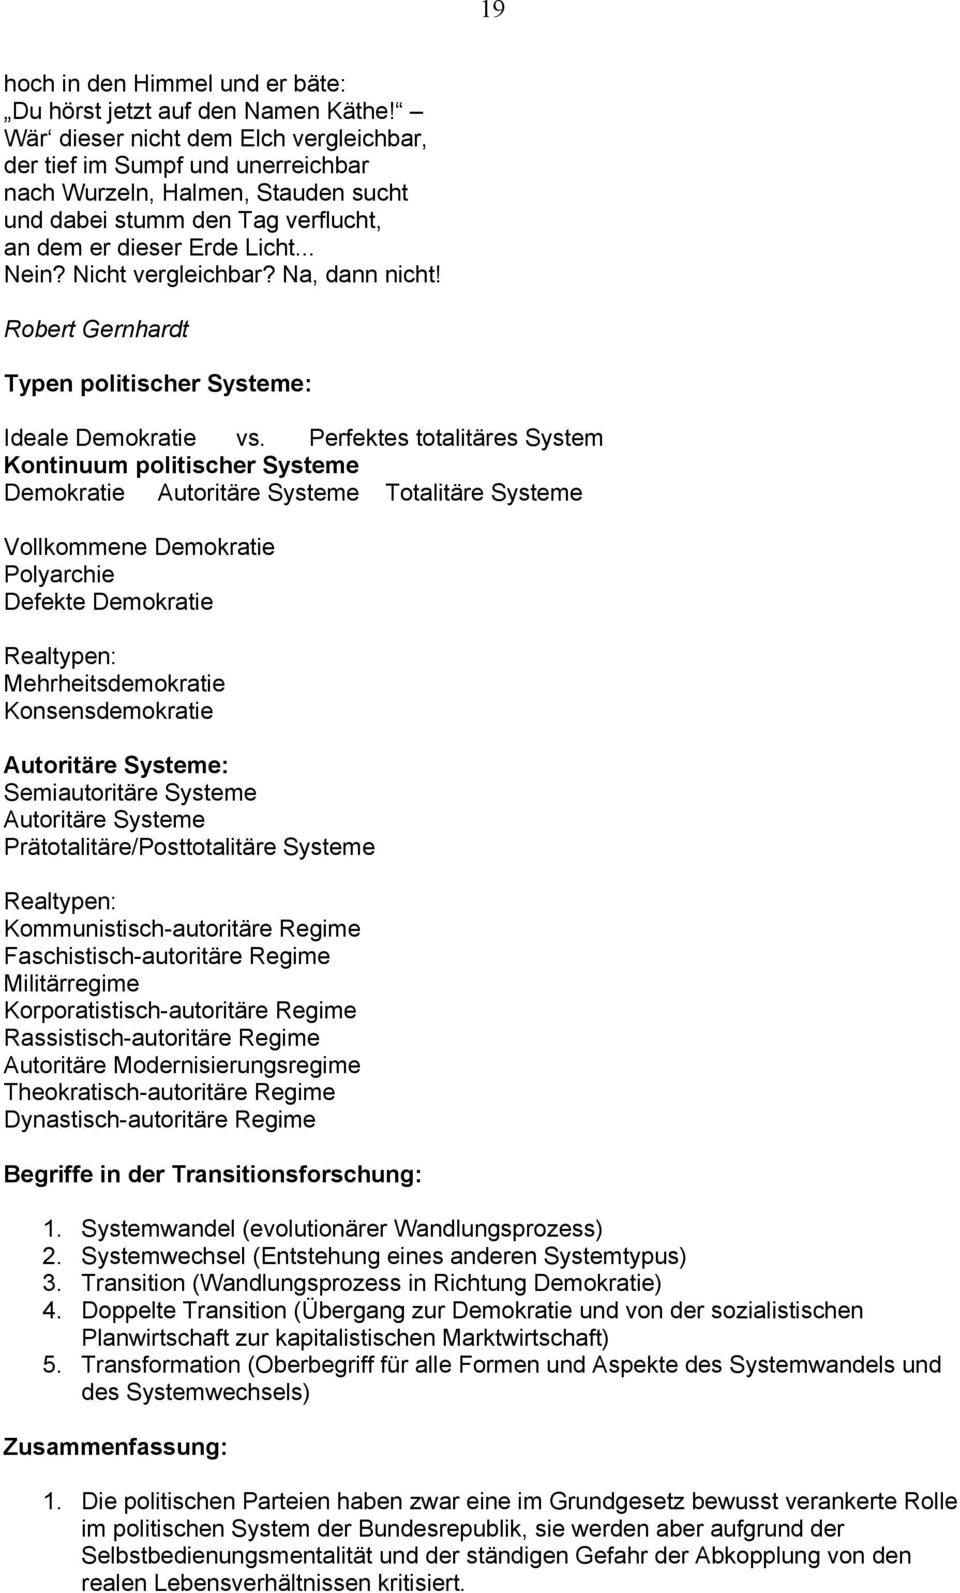 totalitäres system definition